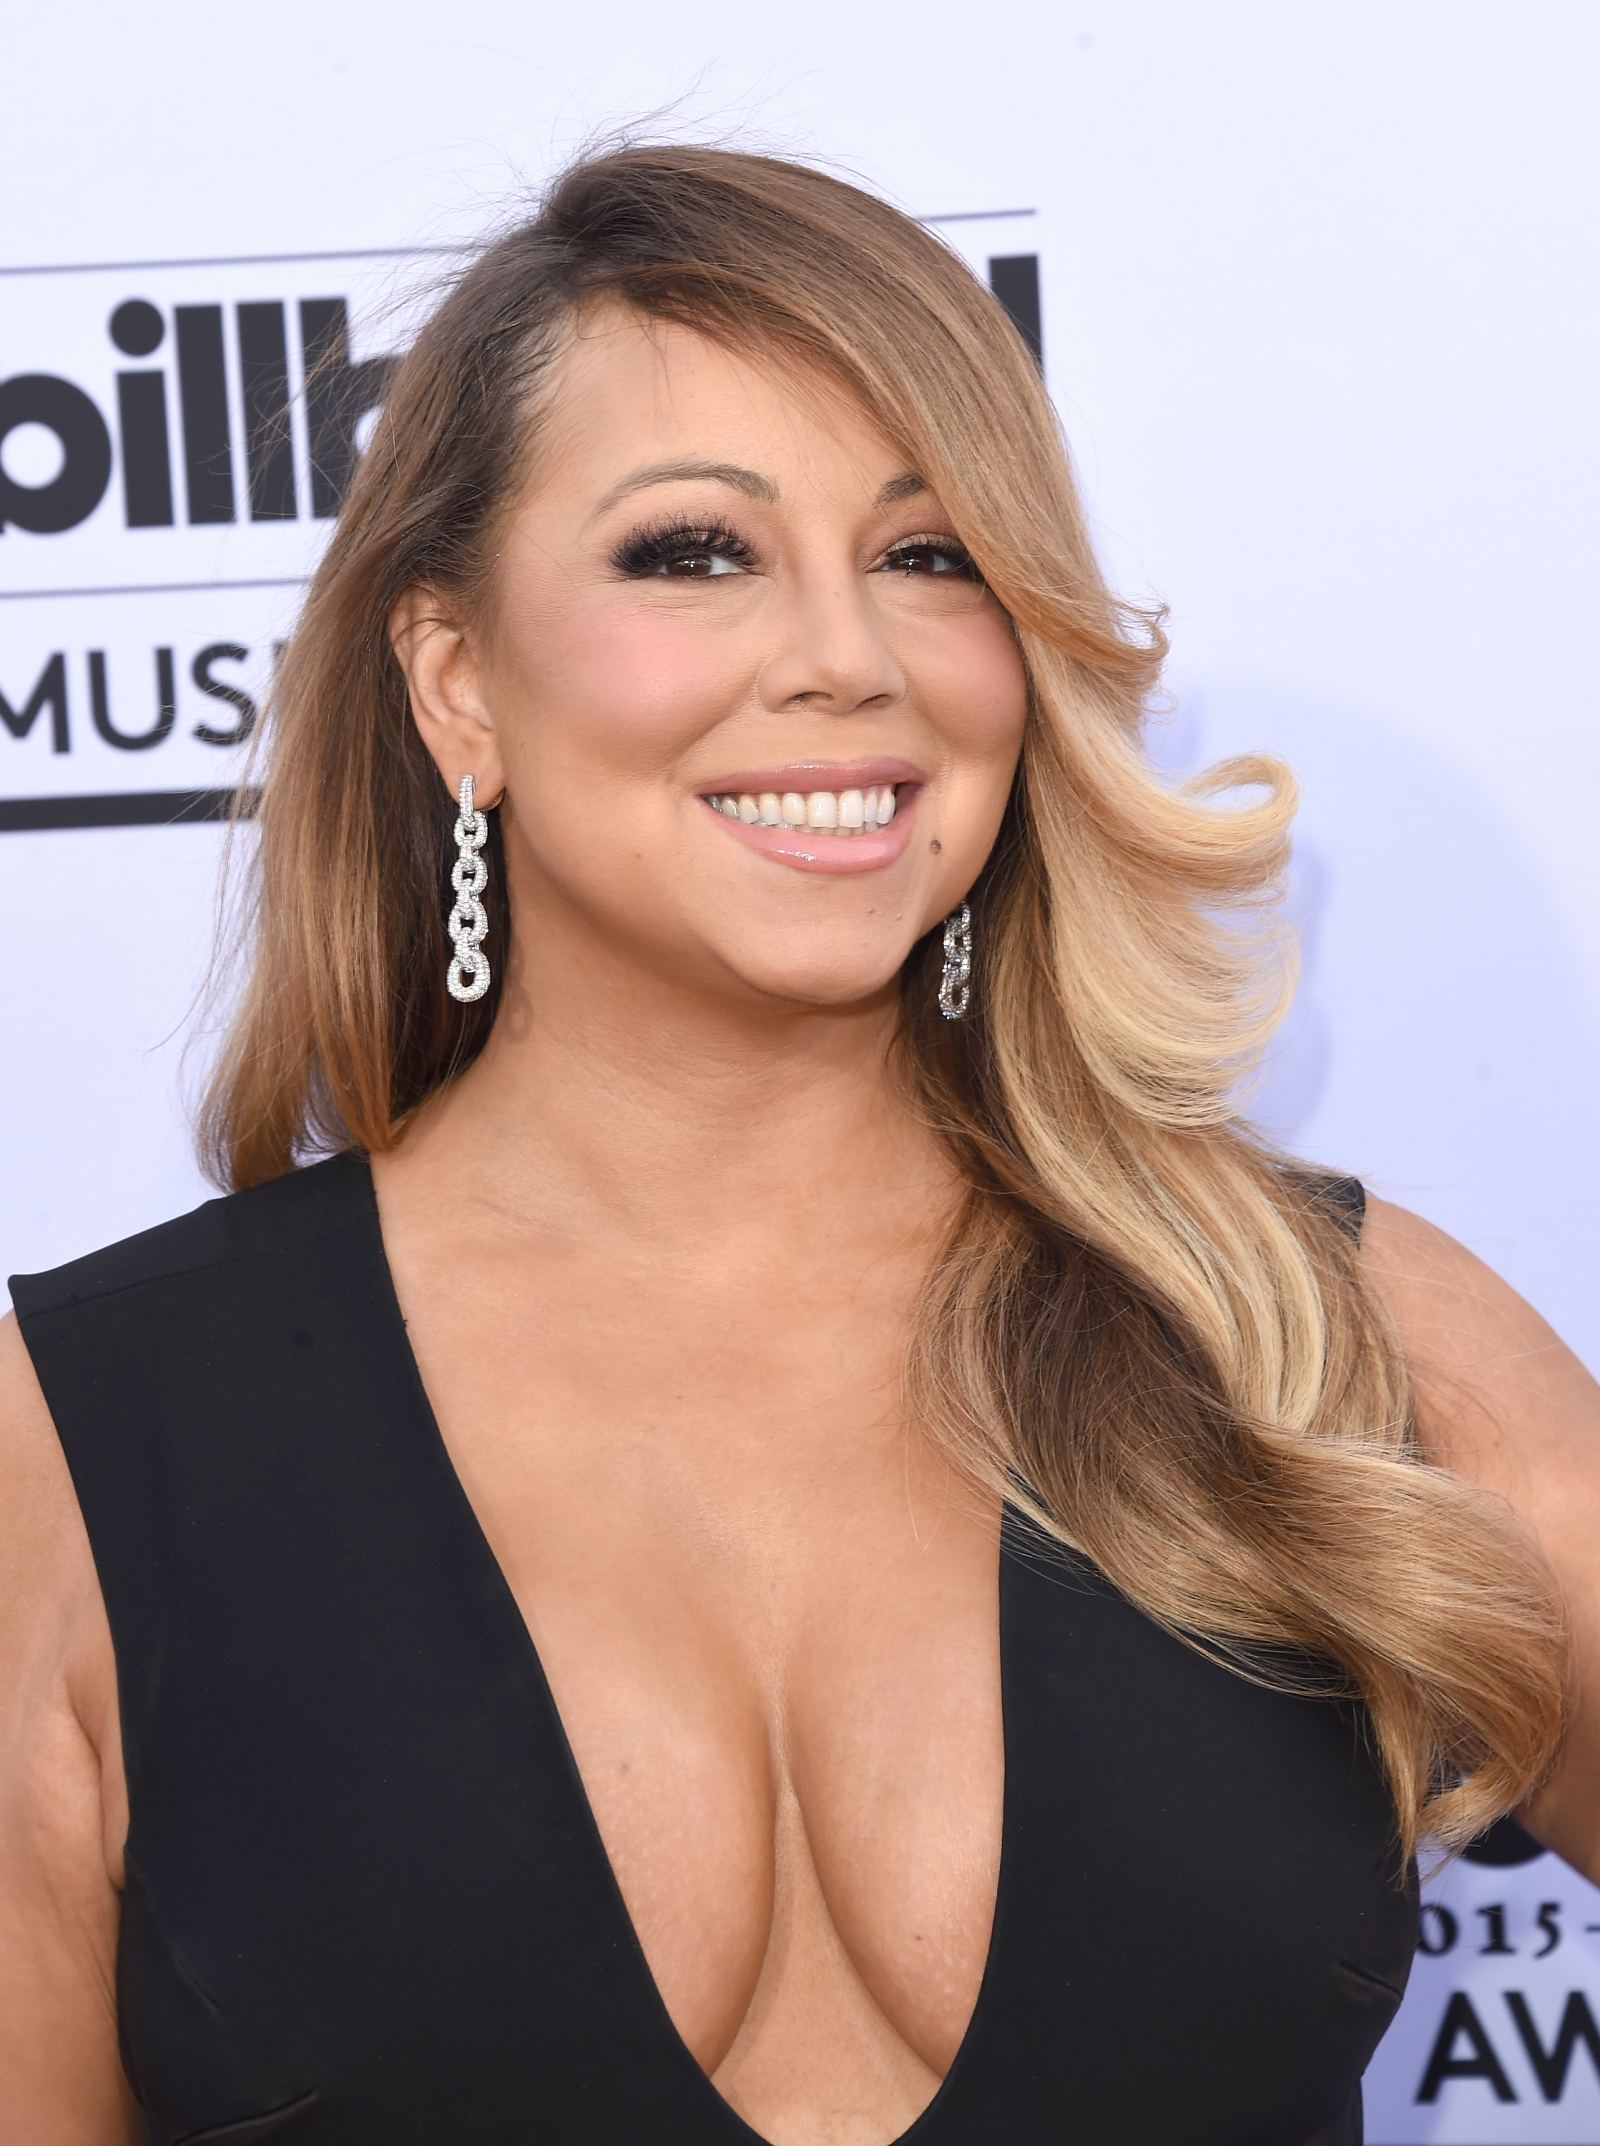 Mariah Carey finally honoured with star on Hollywood Walk of Fame